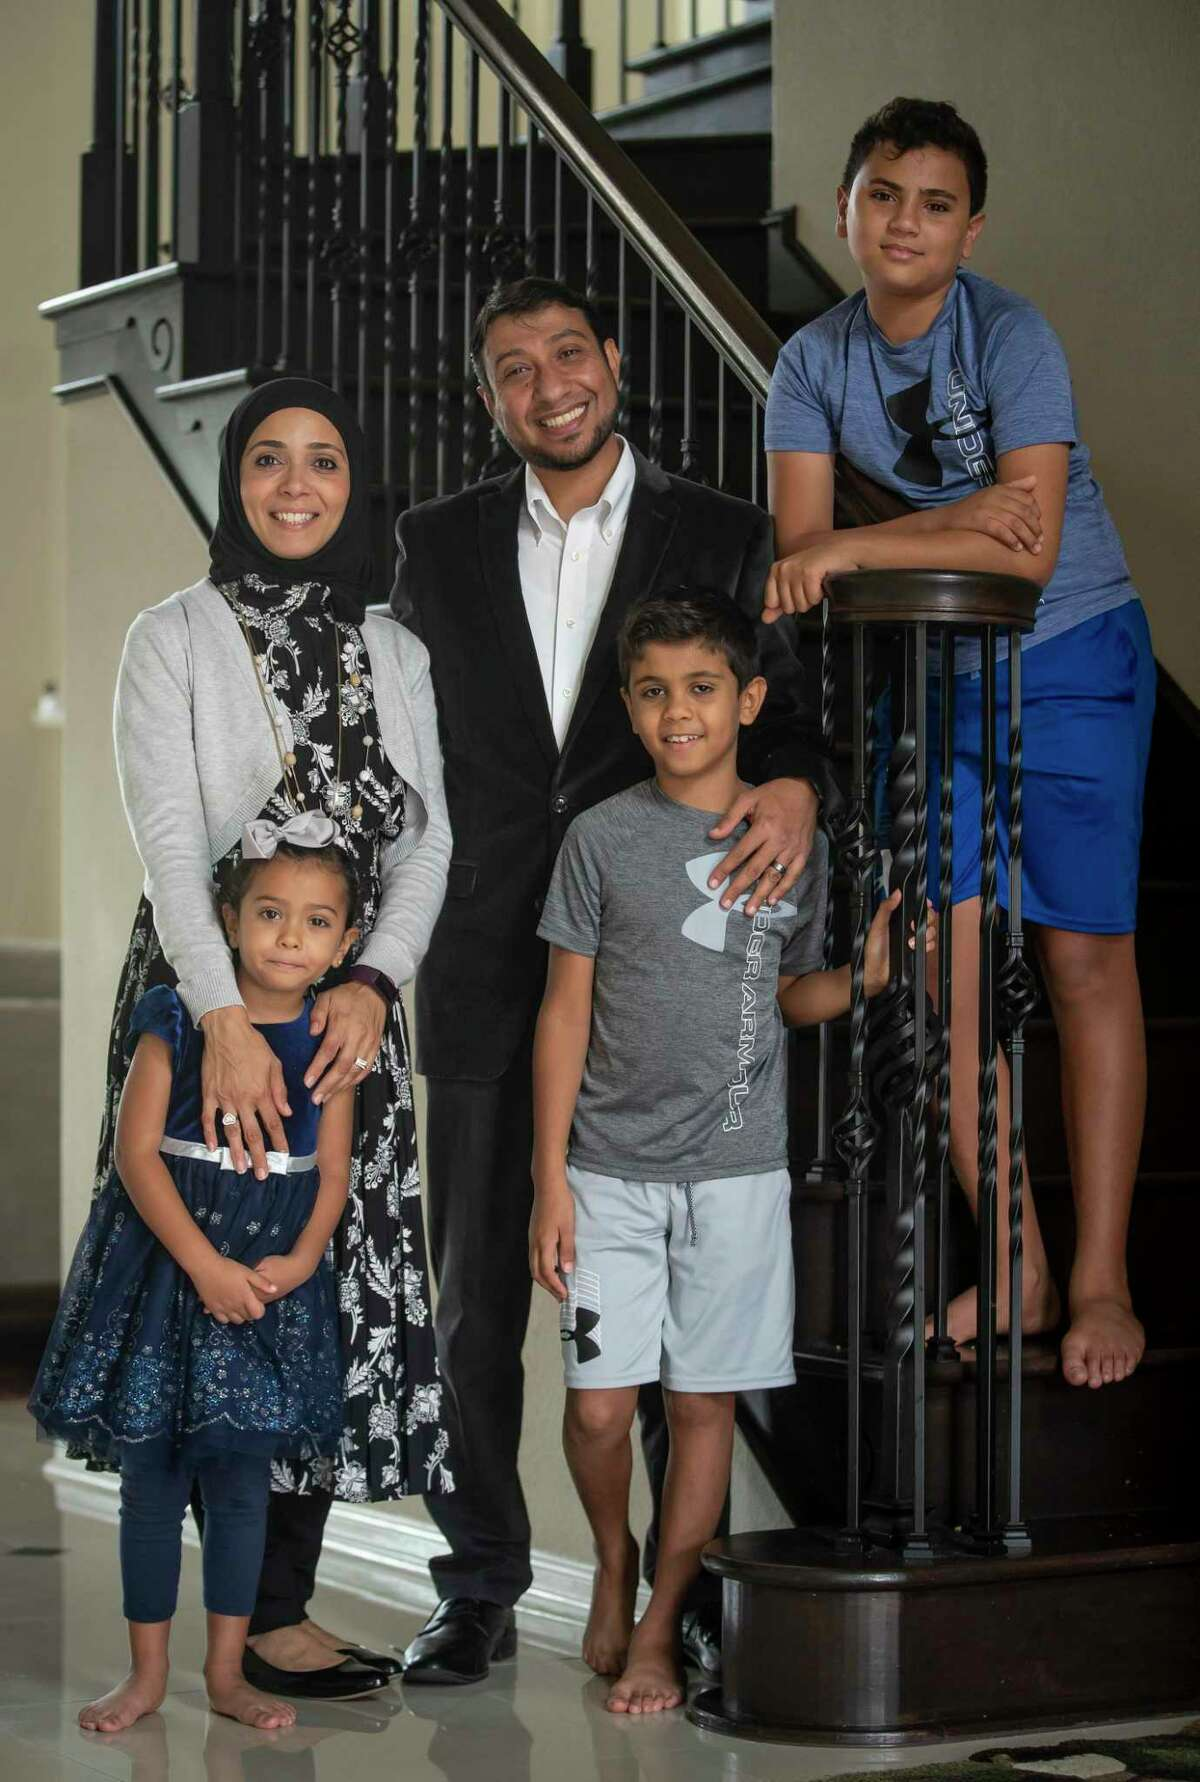 Doaa Omar, photographed with her husband Tamer Mansour, sons Omar and Yourself, and daughter Yassmena at their Friendswood home, has been working in initiatives to breakdown stereotypes of Muslims and get the Muslim community more civically involved. Photographed on Wednesday, Oct. 28, 2020.